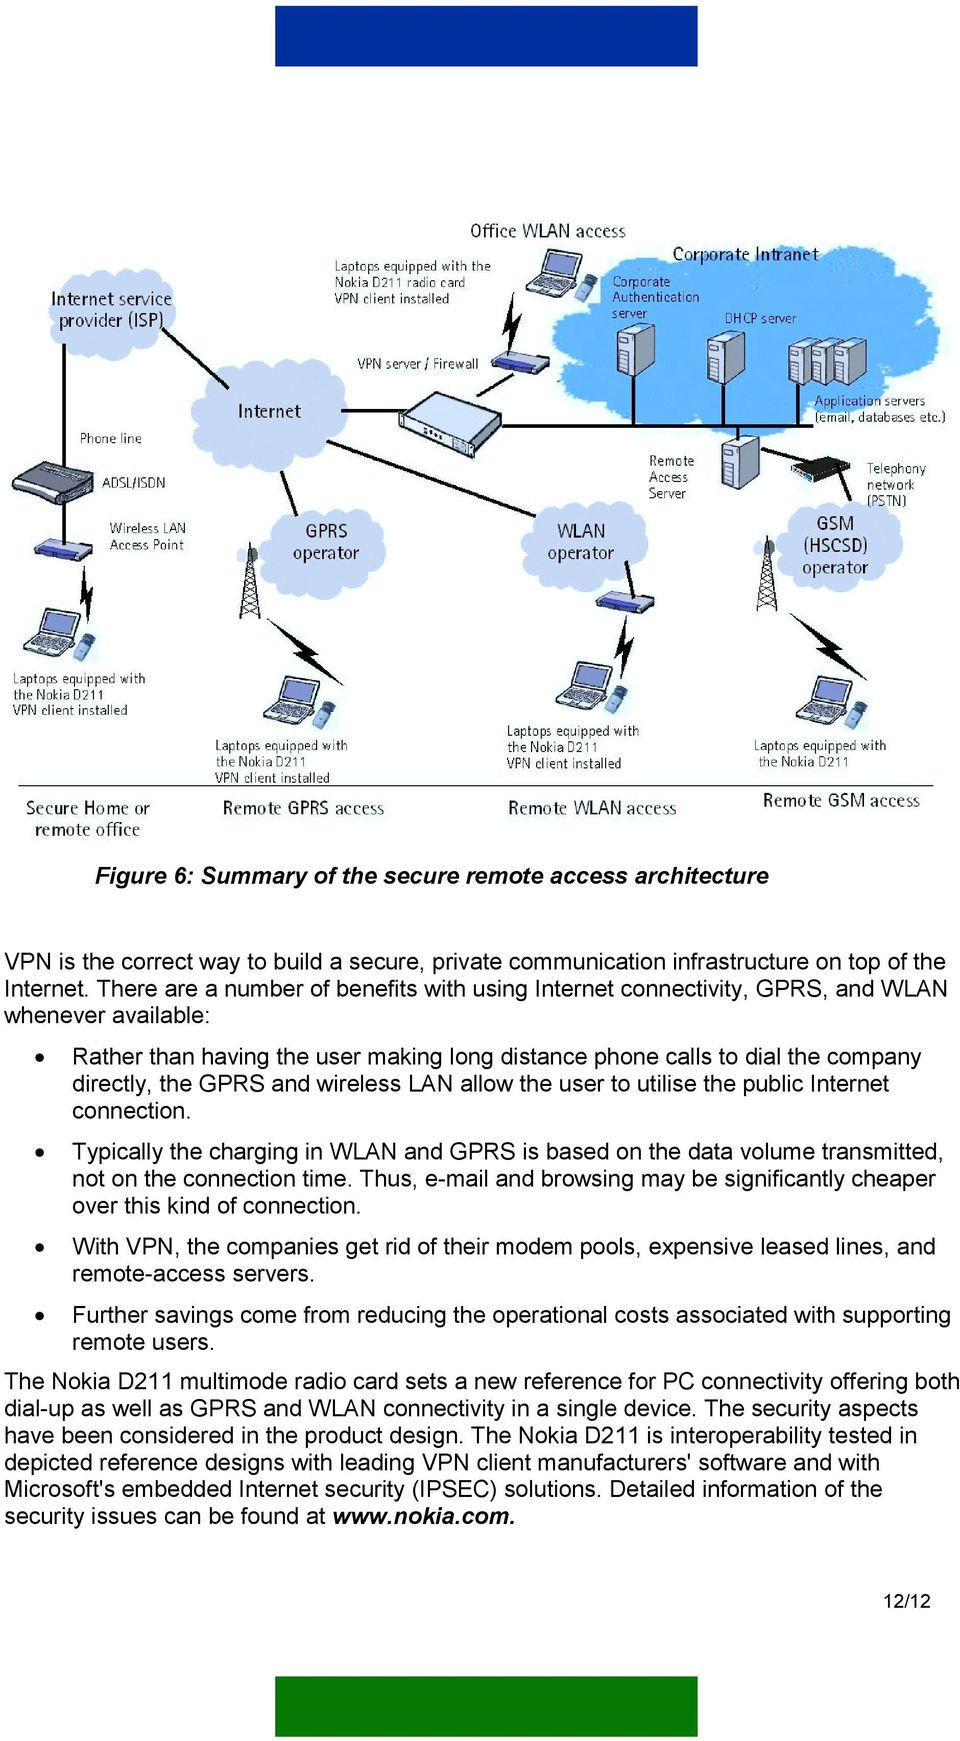 and wireless LAN allow the user to utilise the public Internet connection. Typically the charging in WLAN and GPRS is based on the data volume transmitted, not on the connection time.